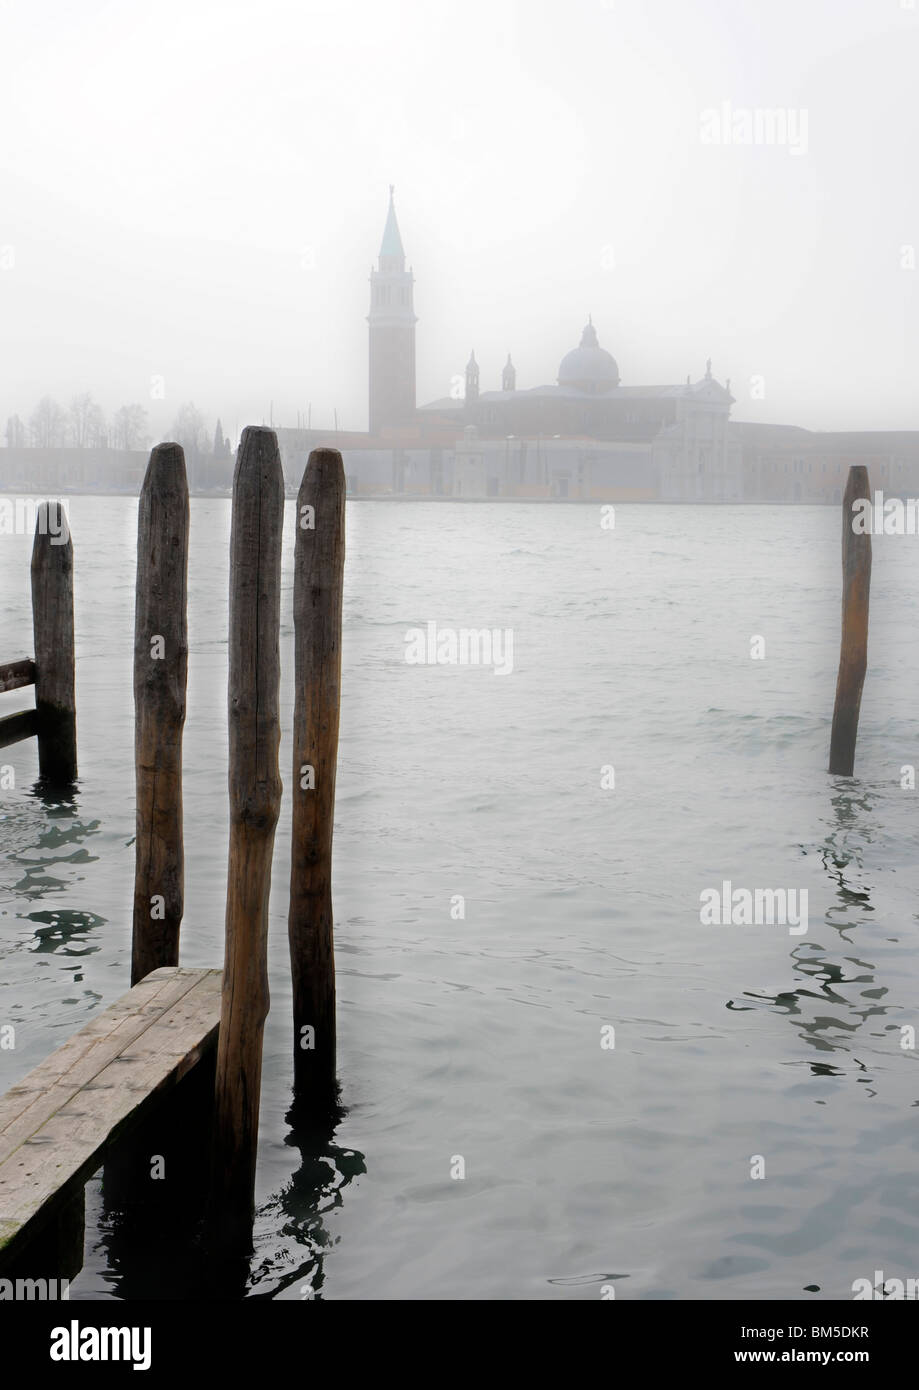 Moorings in Venice, misty day. - Stock Image